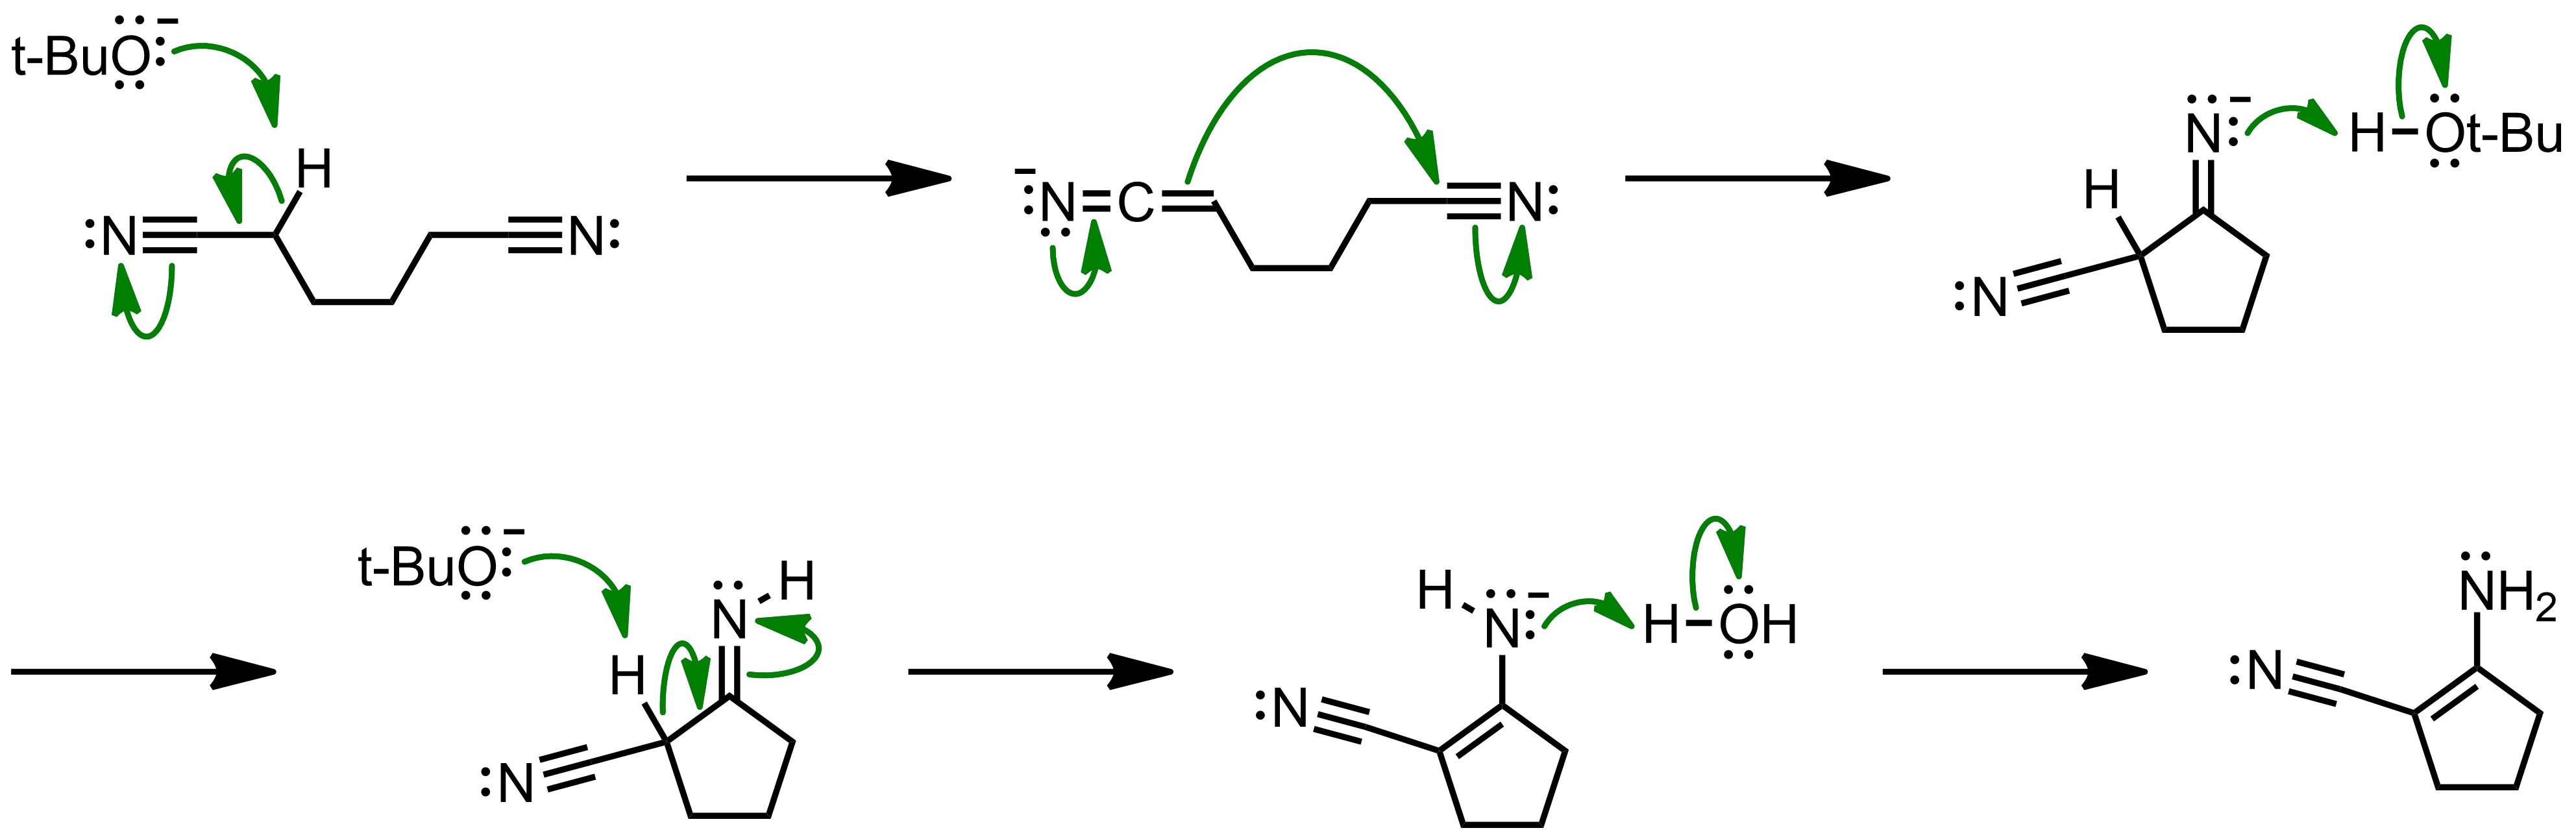 Mechanism of the Thorpe-Ziegler Reaction